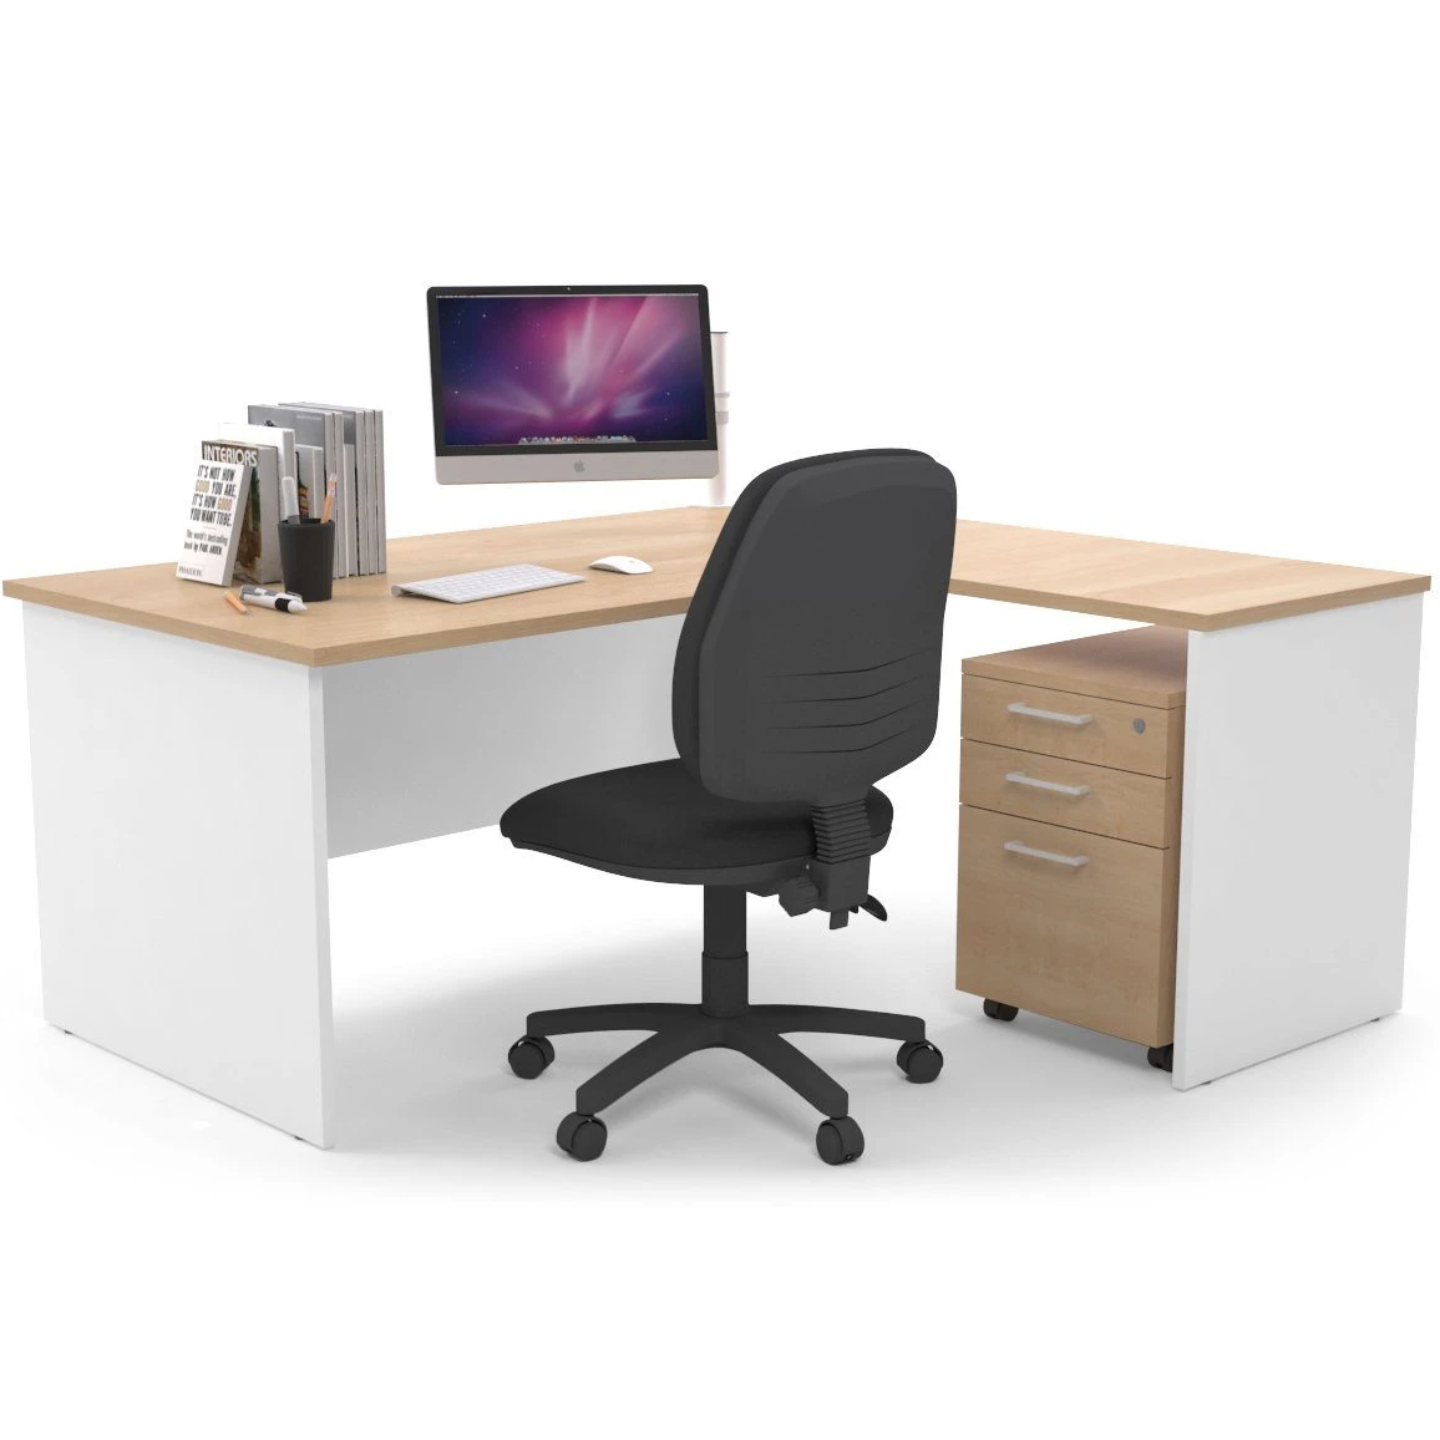 Home Office Table HO-006